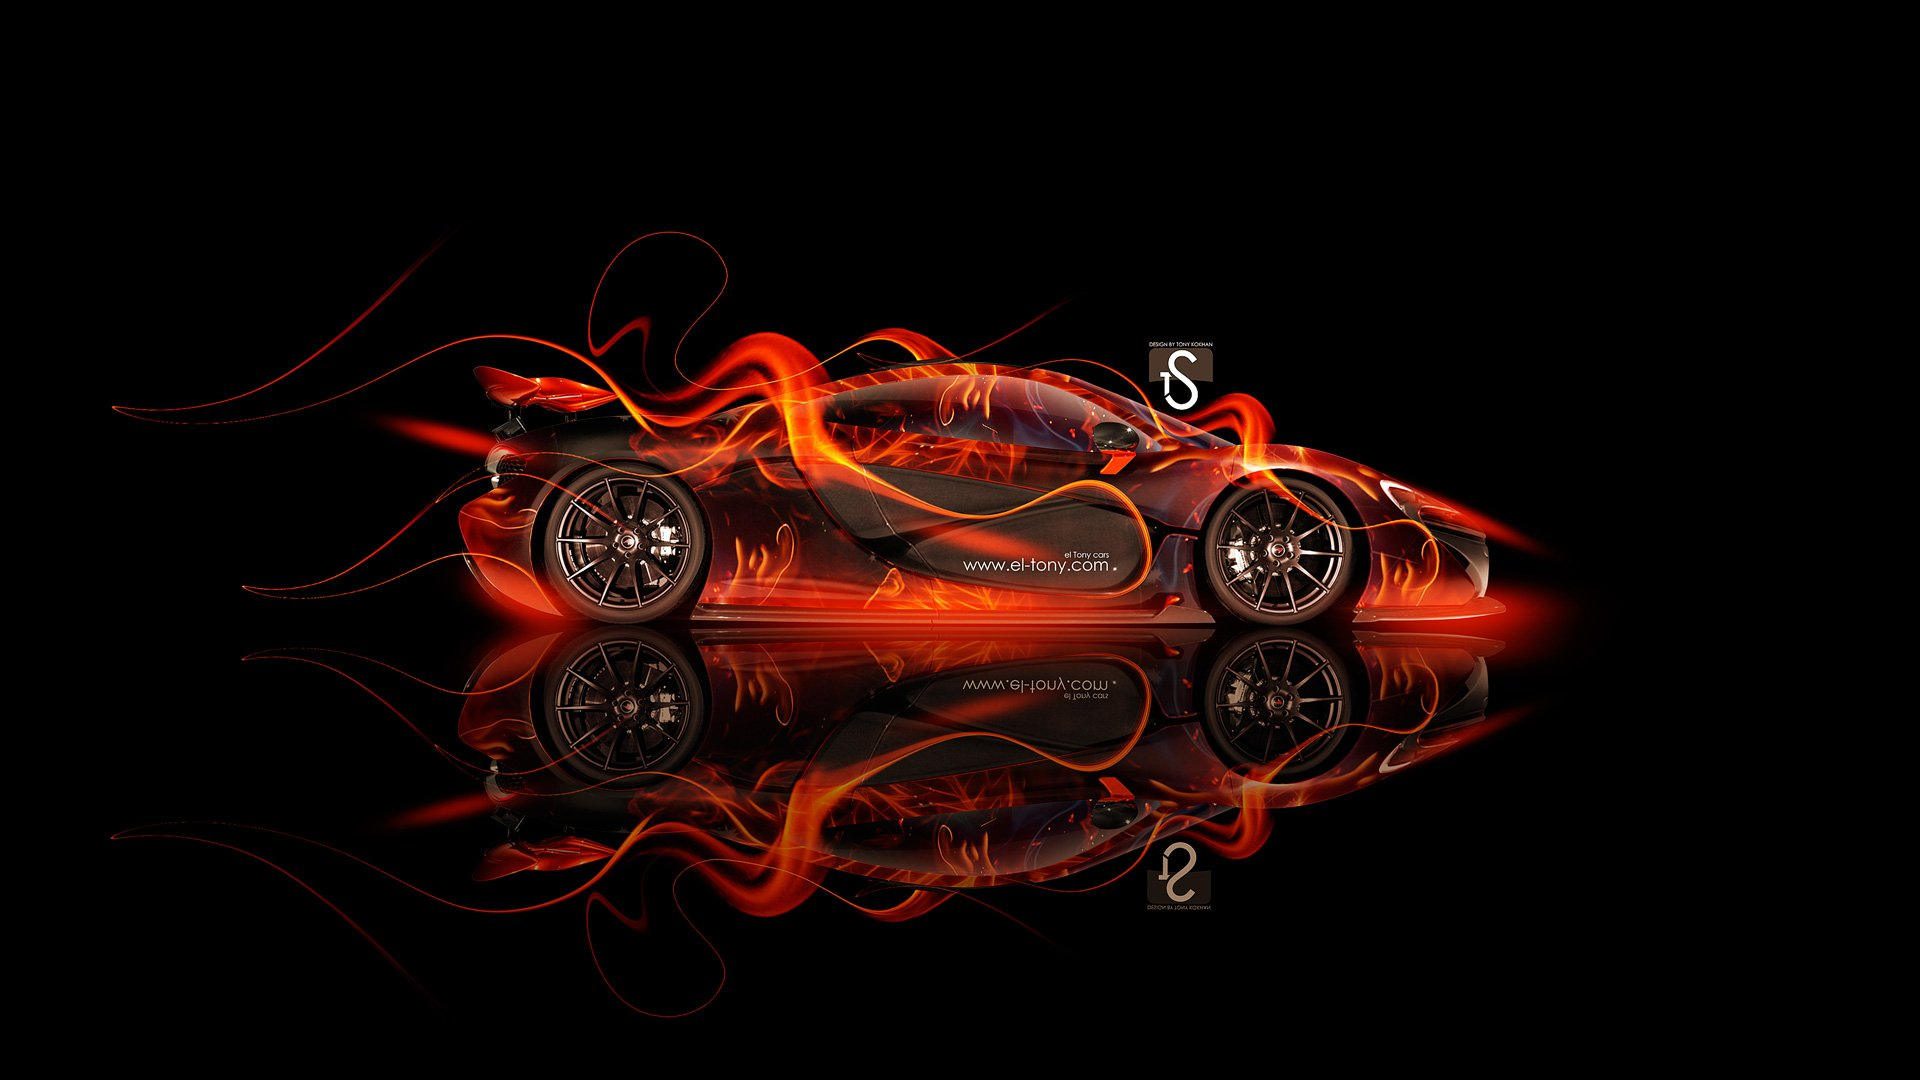 McLaren P1 Side Fire Abstract Car 2013 HD Wallpapers design by Tony 1920x1080